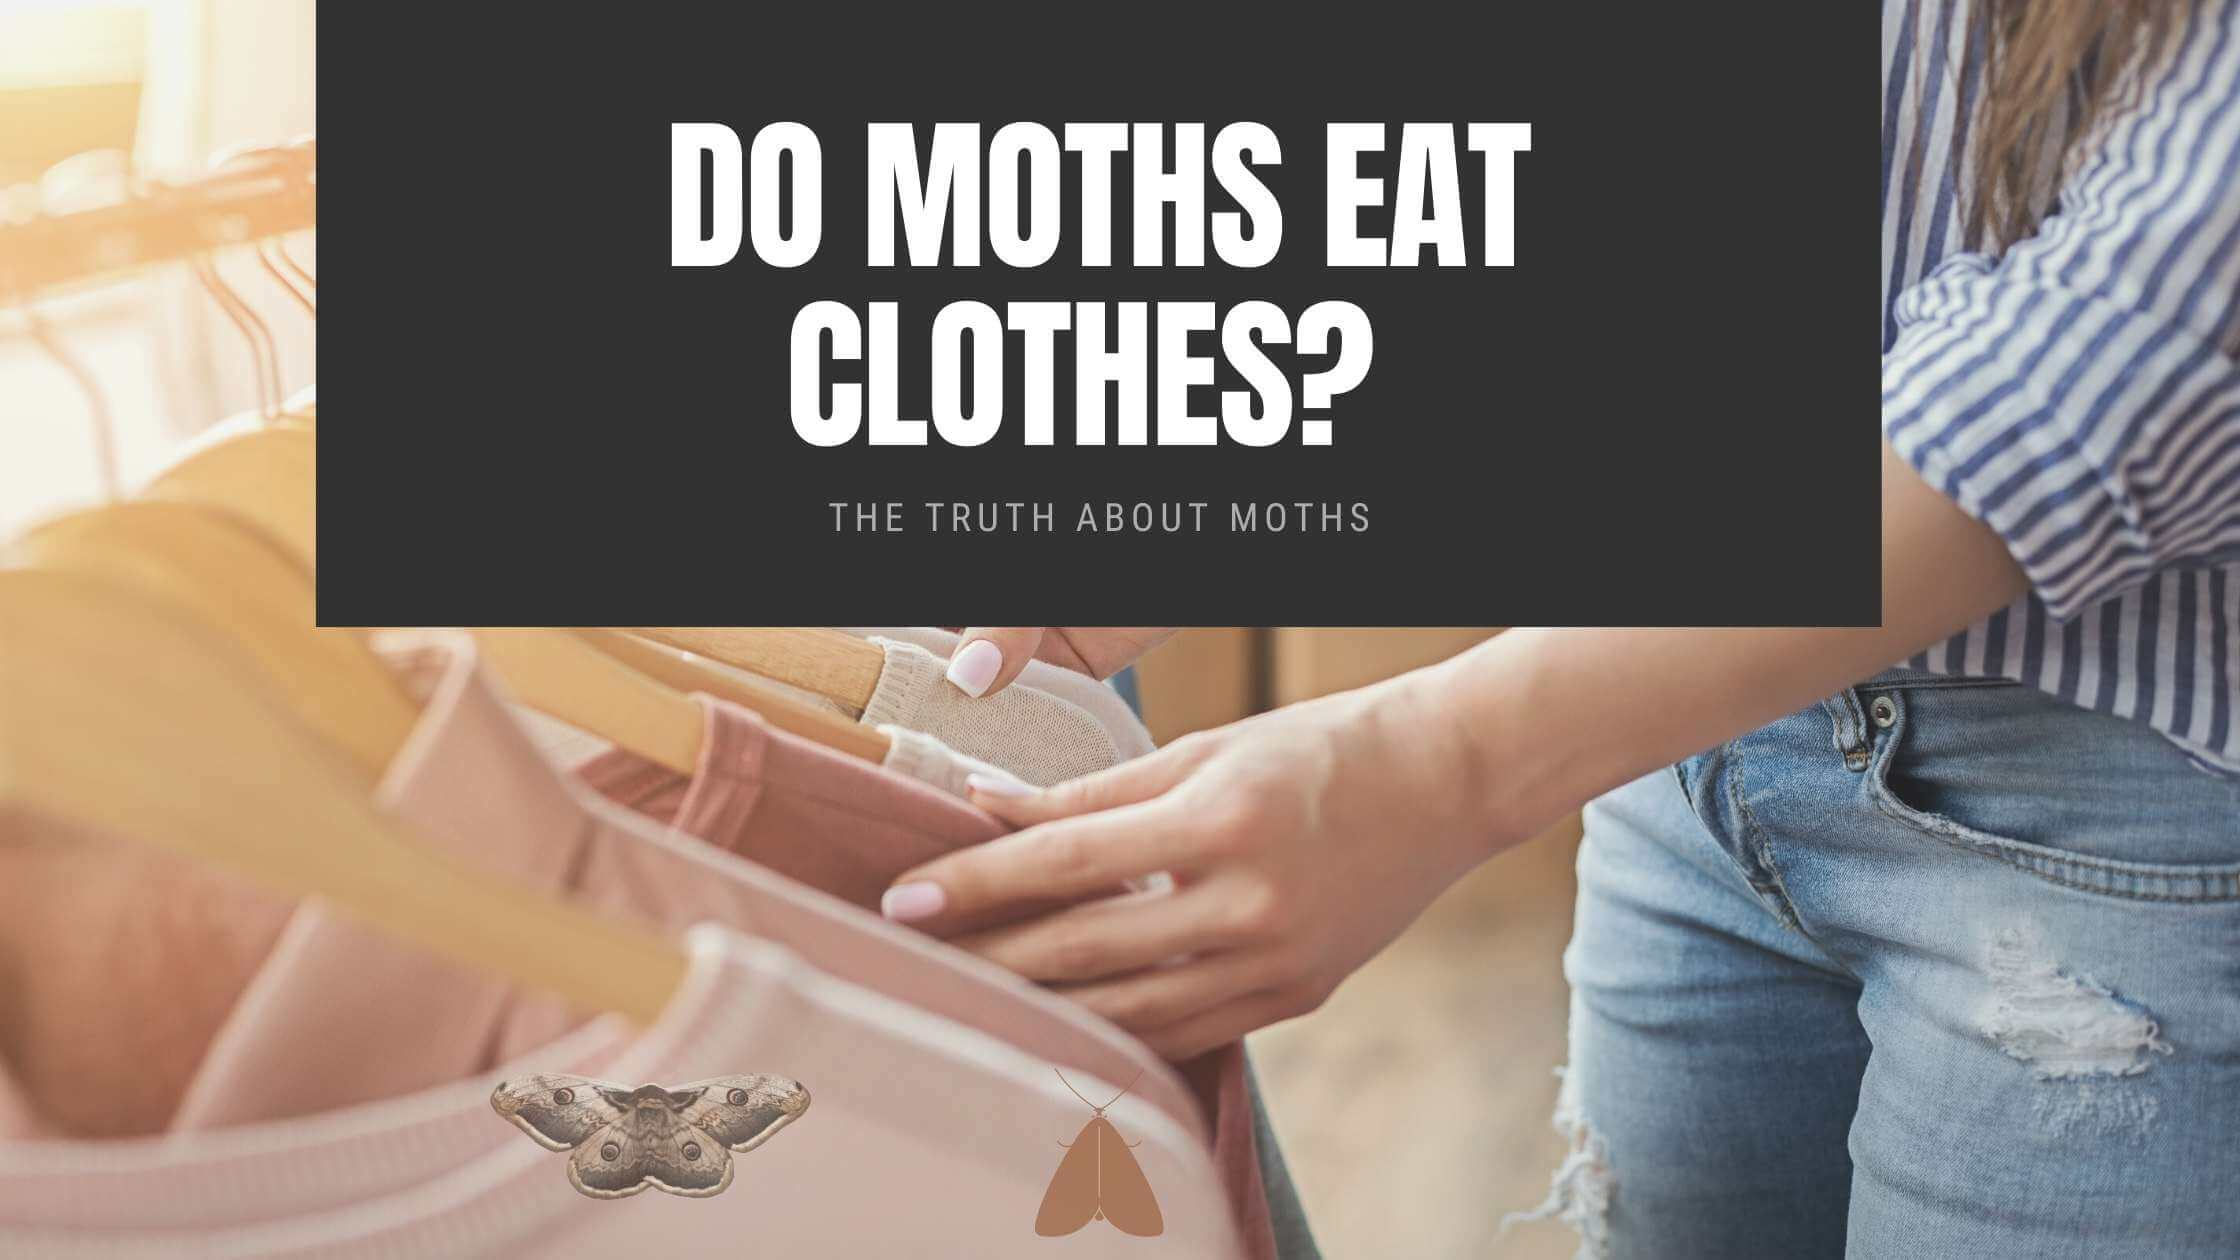 The Truth About Moths